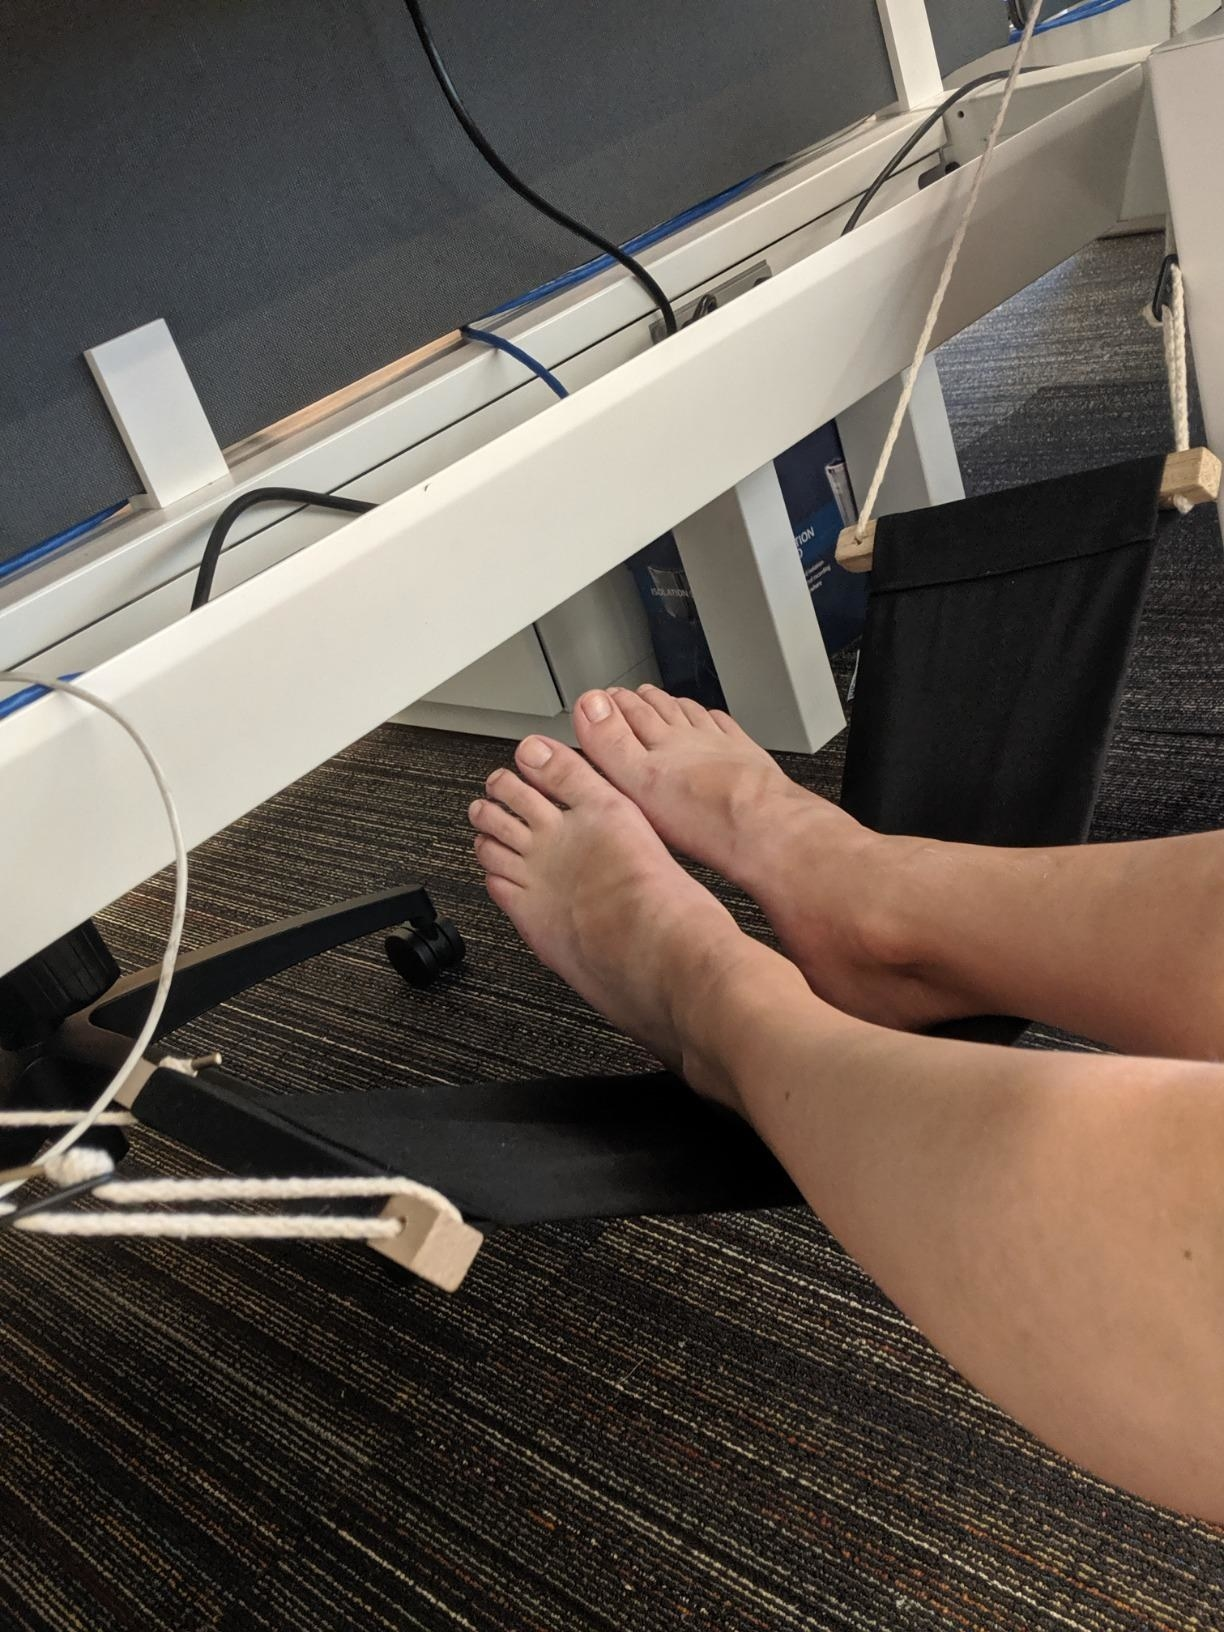 a reviewer with their feet resting on the hammock under their desk setup